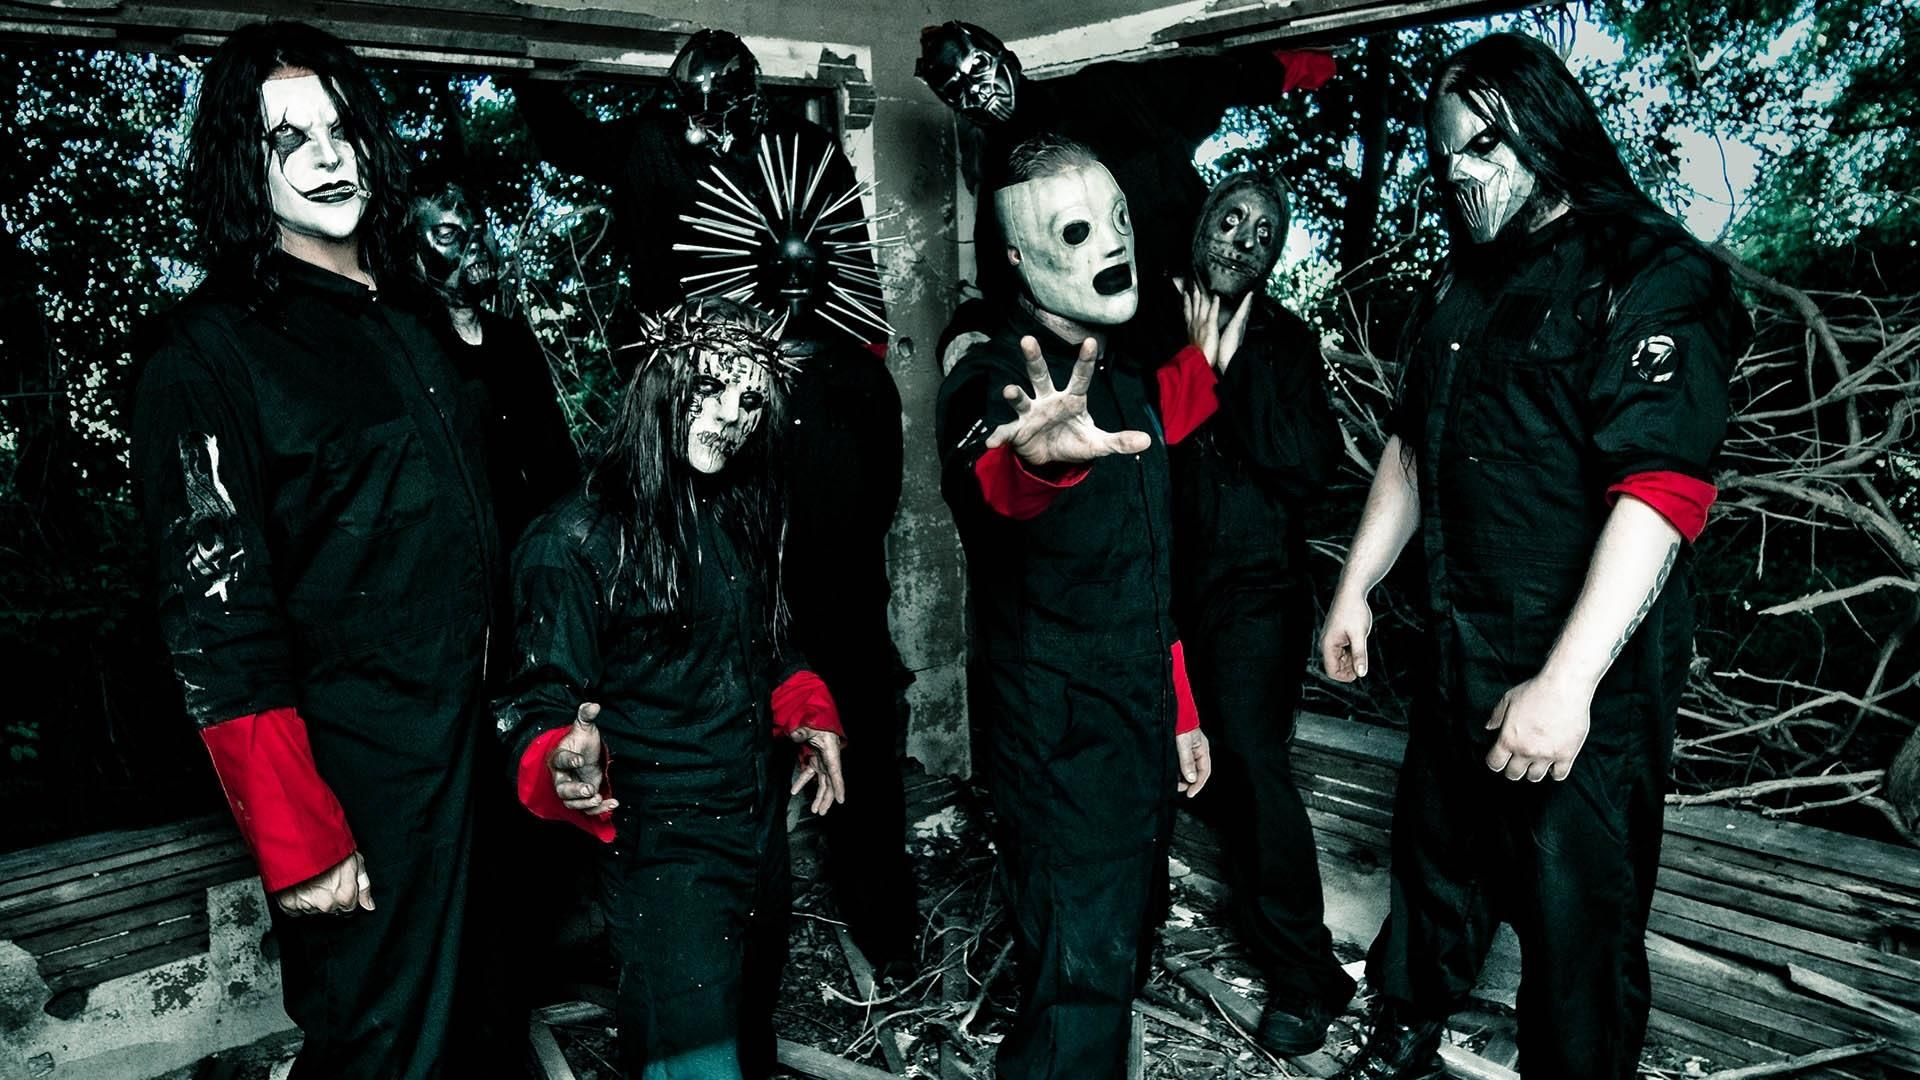 Joey jordison style favor photos pictures and wallpapers for - Explore Slipknot Band Computer Wallpaper And More